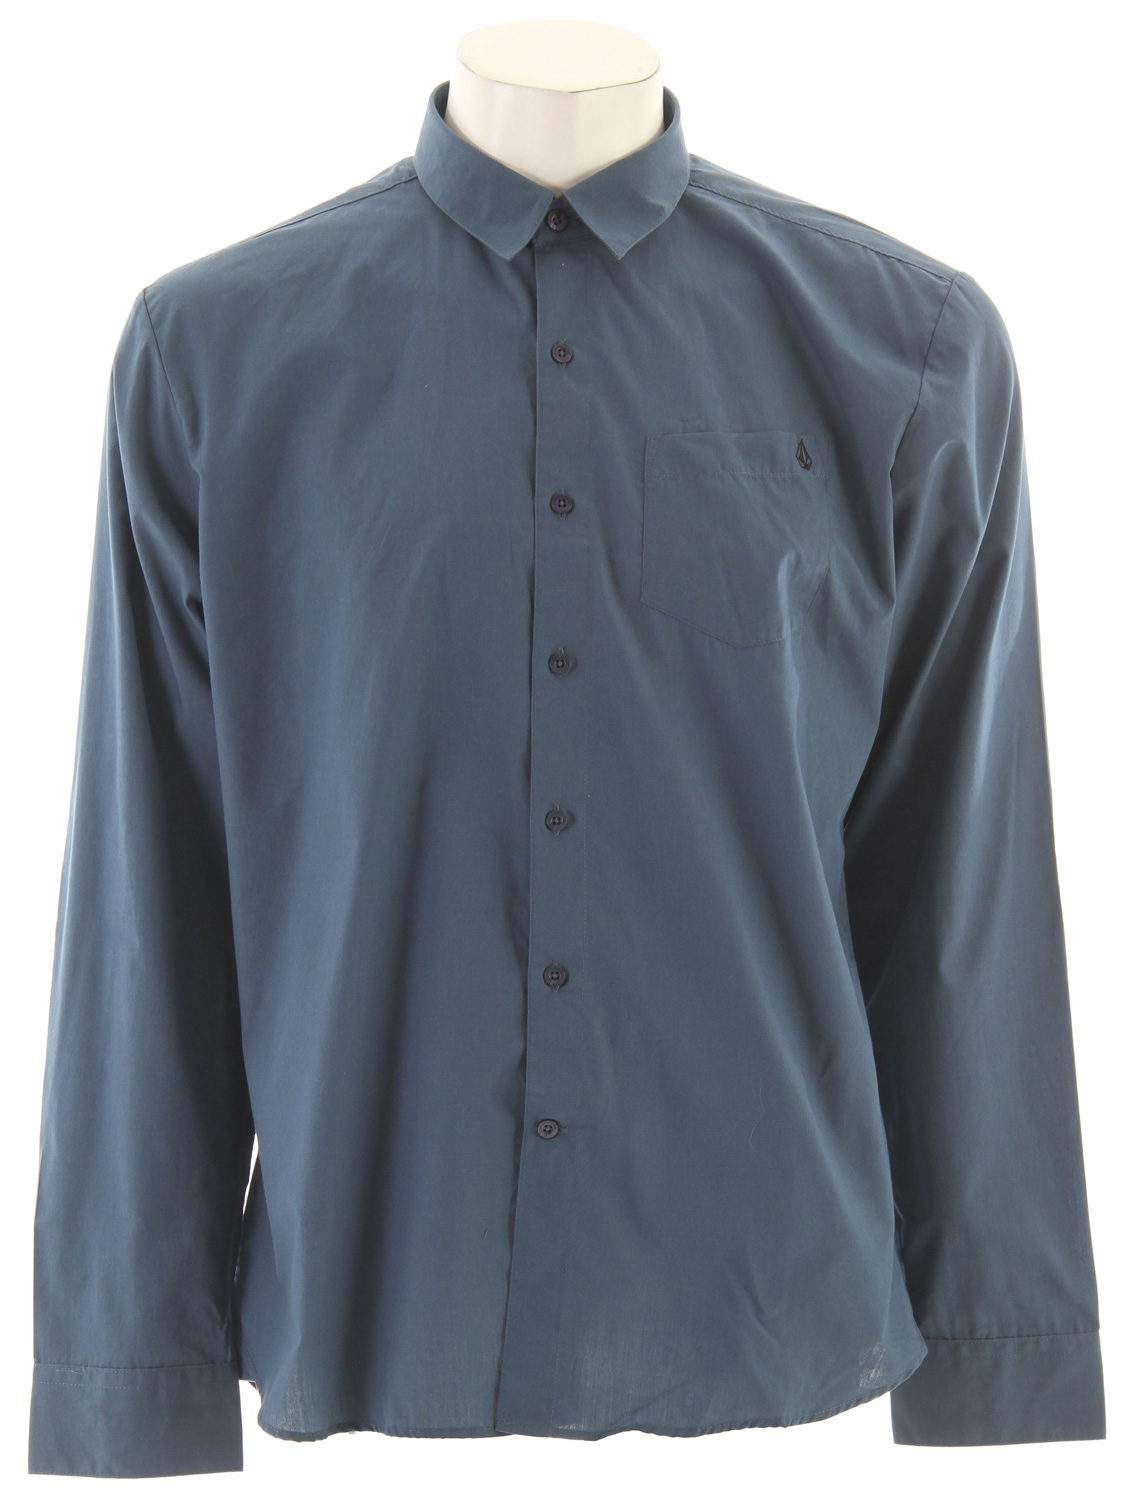 Surf Key Features of the Volcom X Factor Solid L/S Shirt: Classic fit shirt with pen slot detail at pocket Stone embroidery Garment wash Corpo class collection 55% Cotton/45% Polyester - $28.95